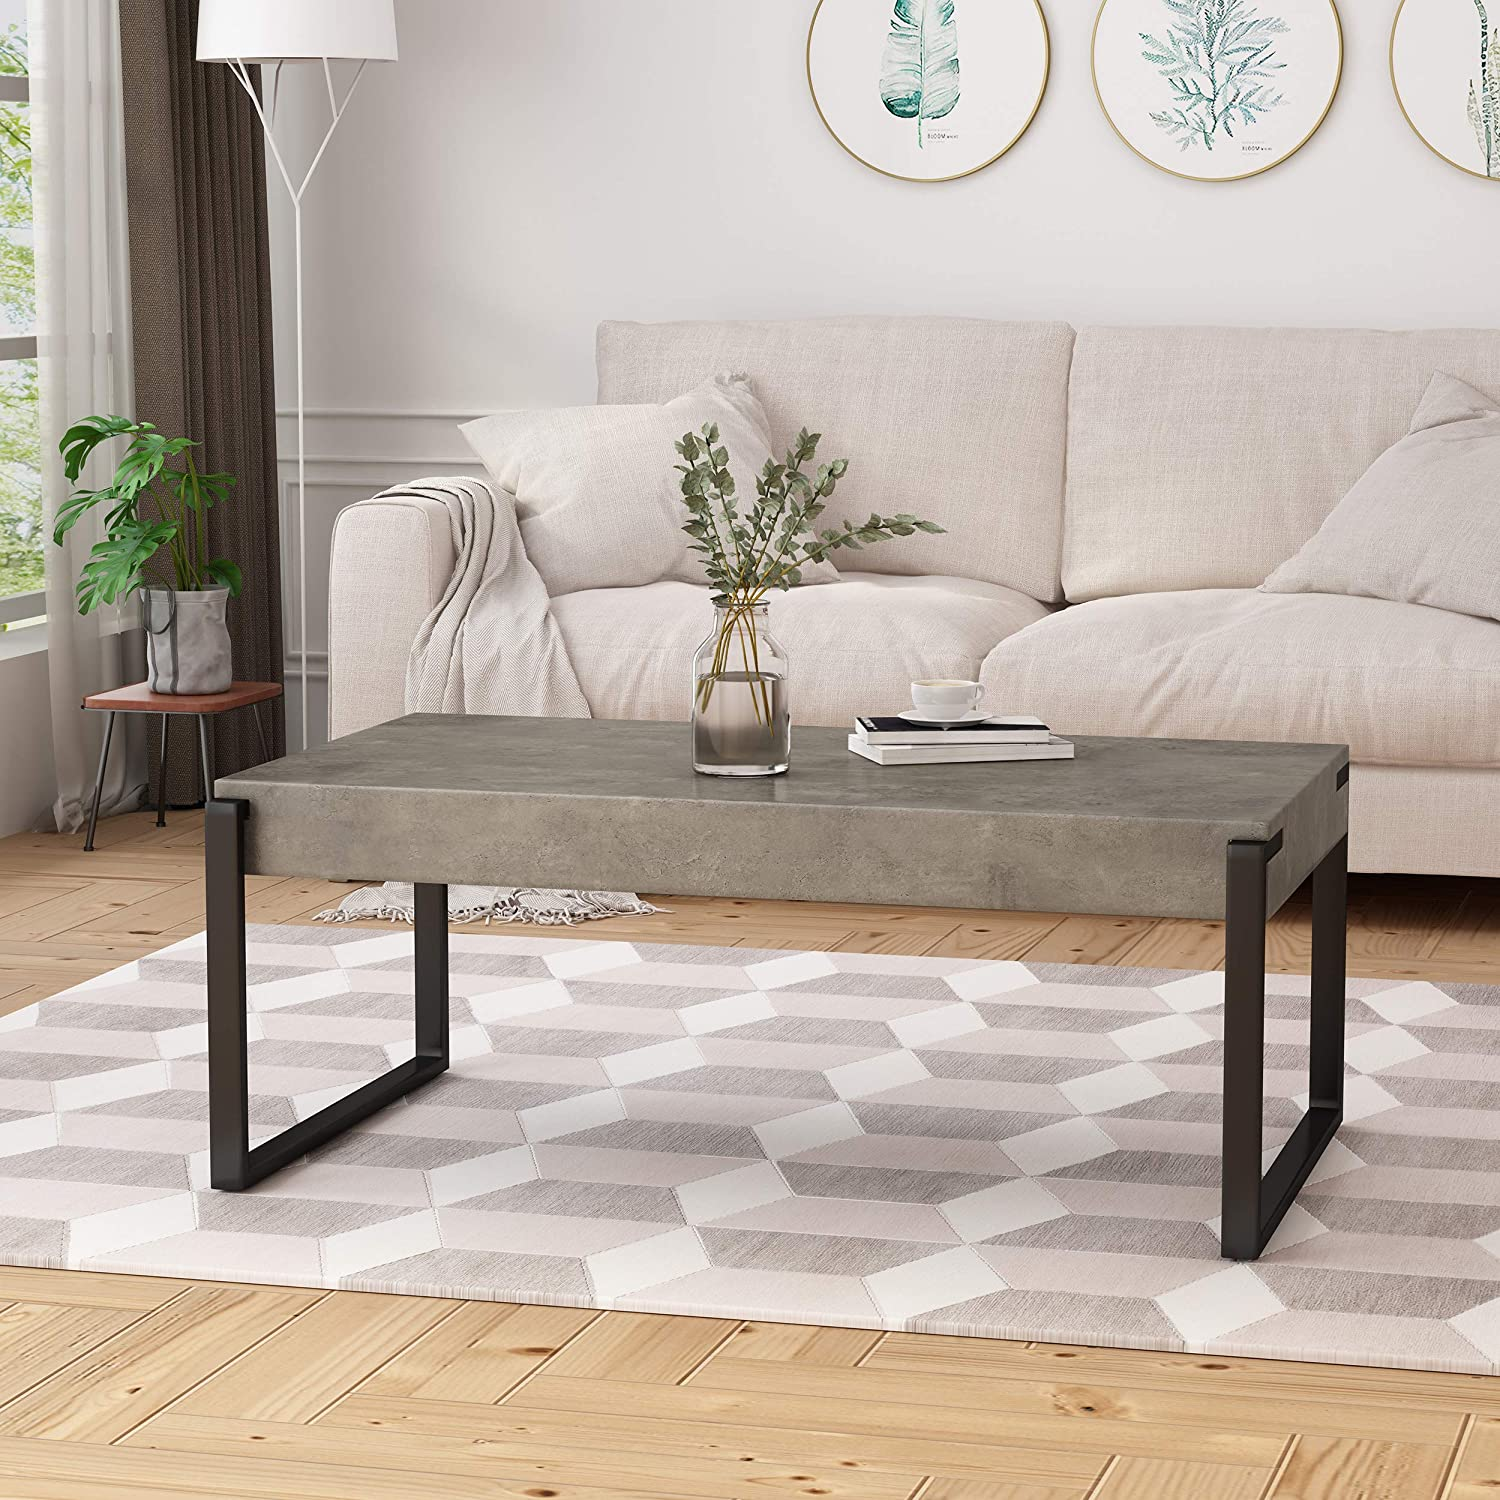 Amazon com shaw coffee table modern contemporary industrial faux wood with iron legs light concrete and matte black kitchen dining